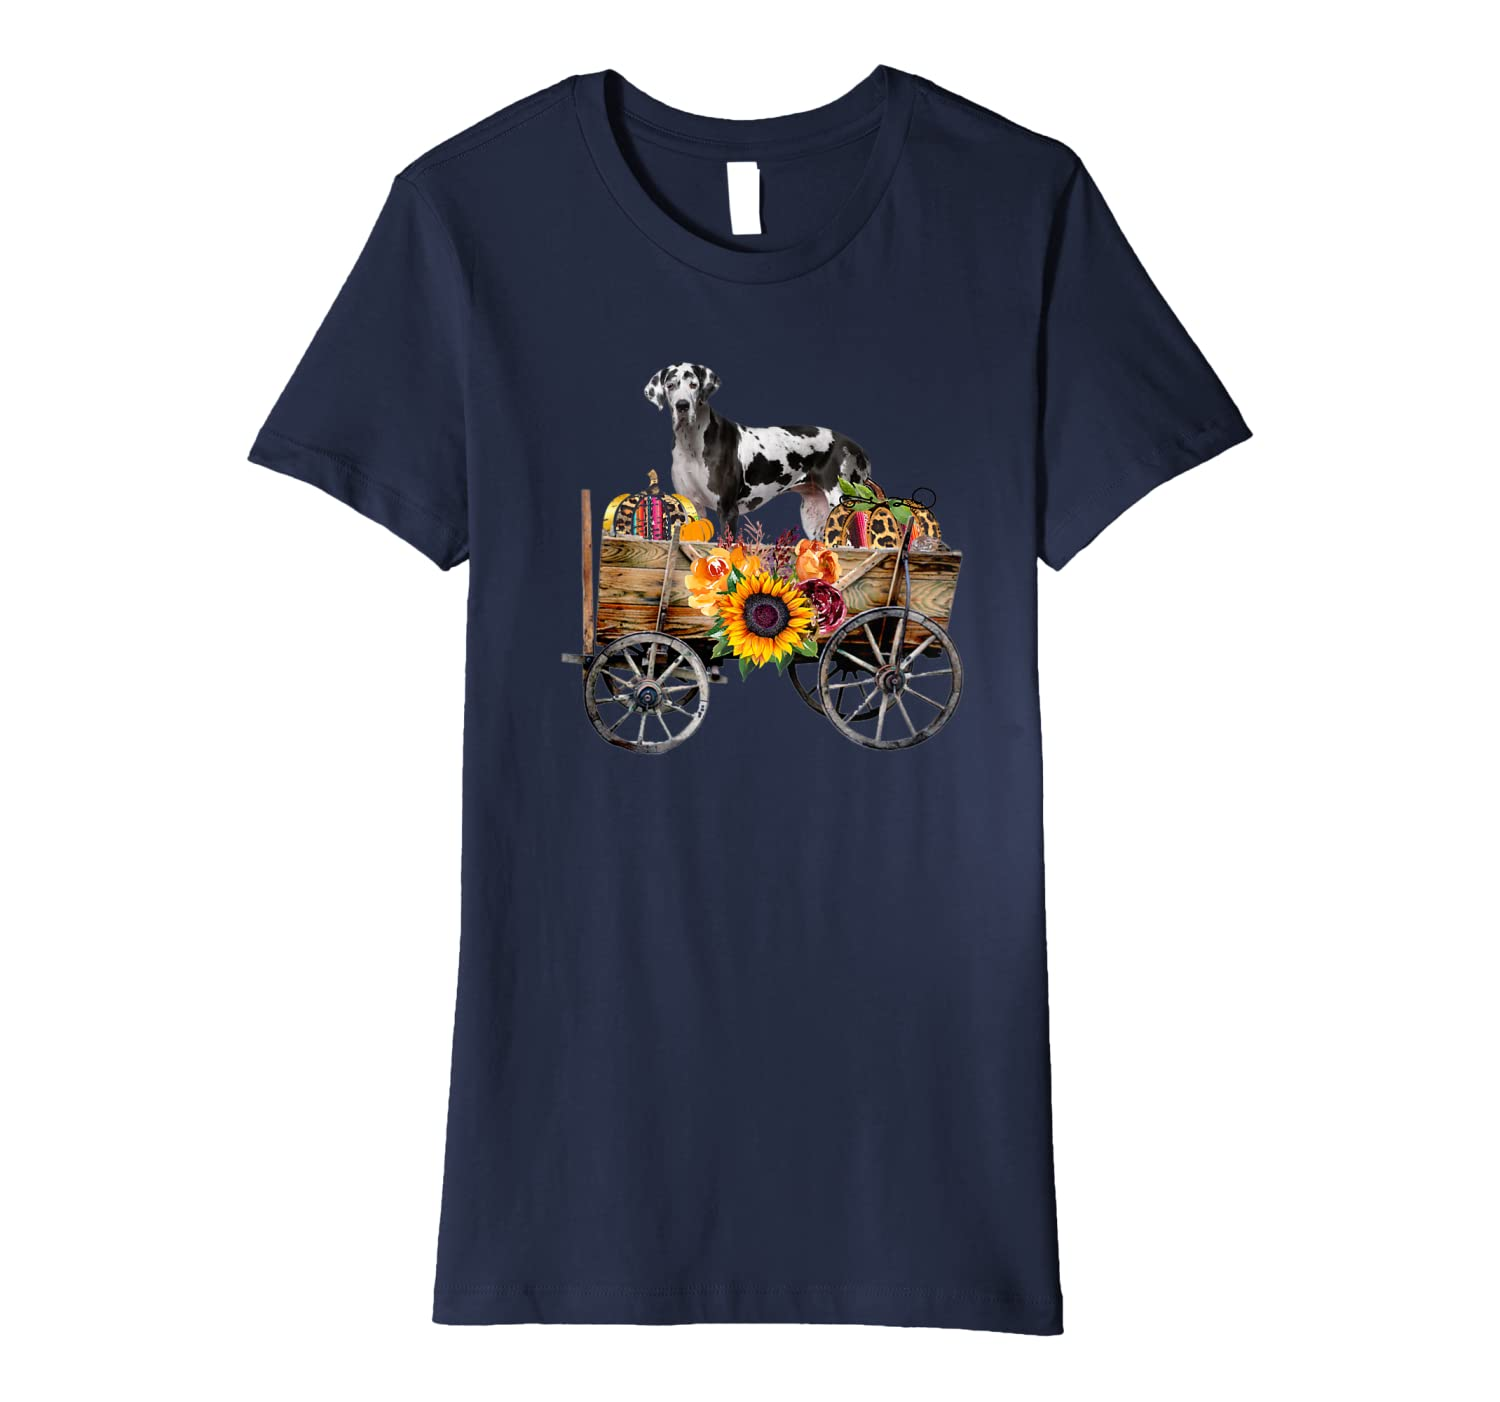 Womens Great Dane Clothing – Large Dog in Country Wagon Premium T-Shirt